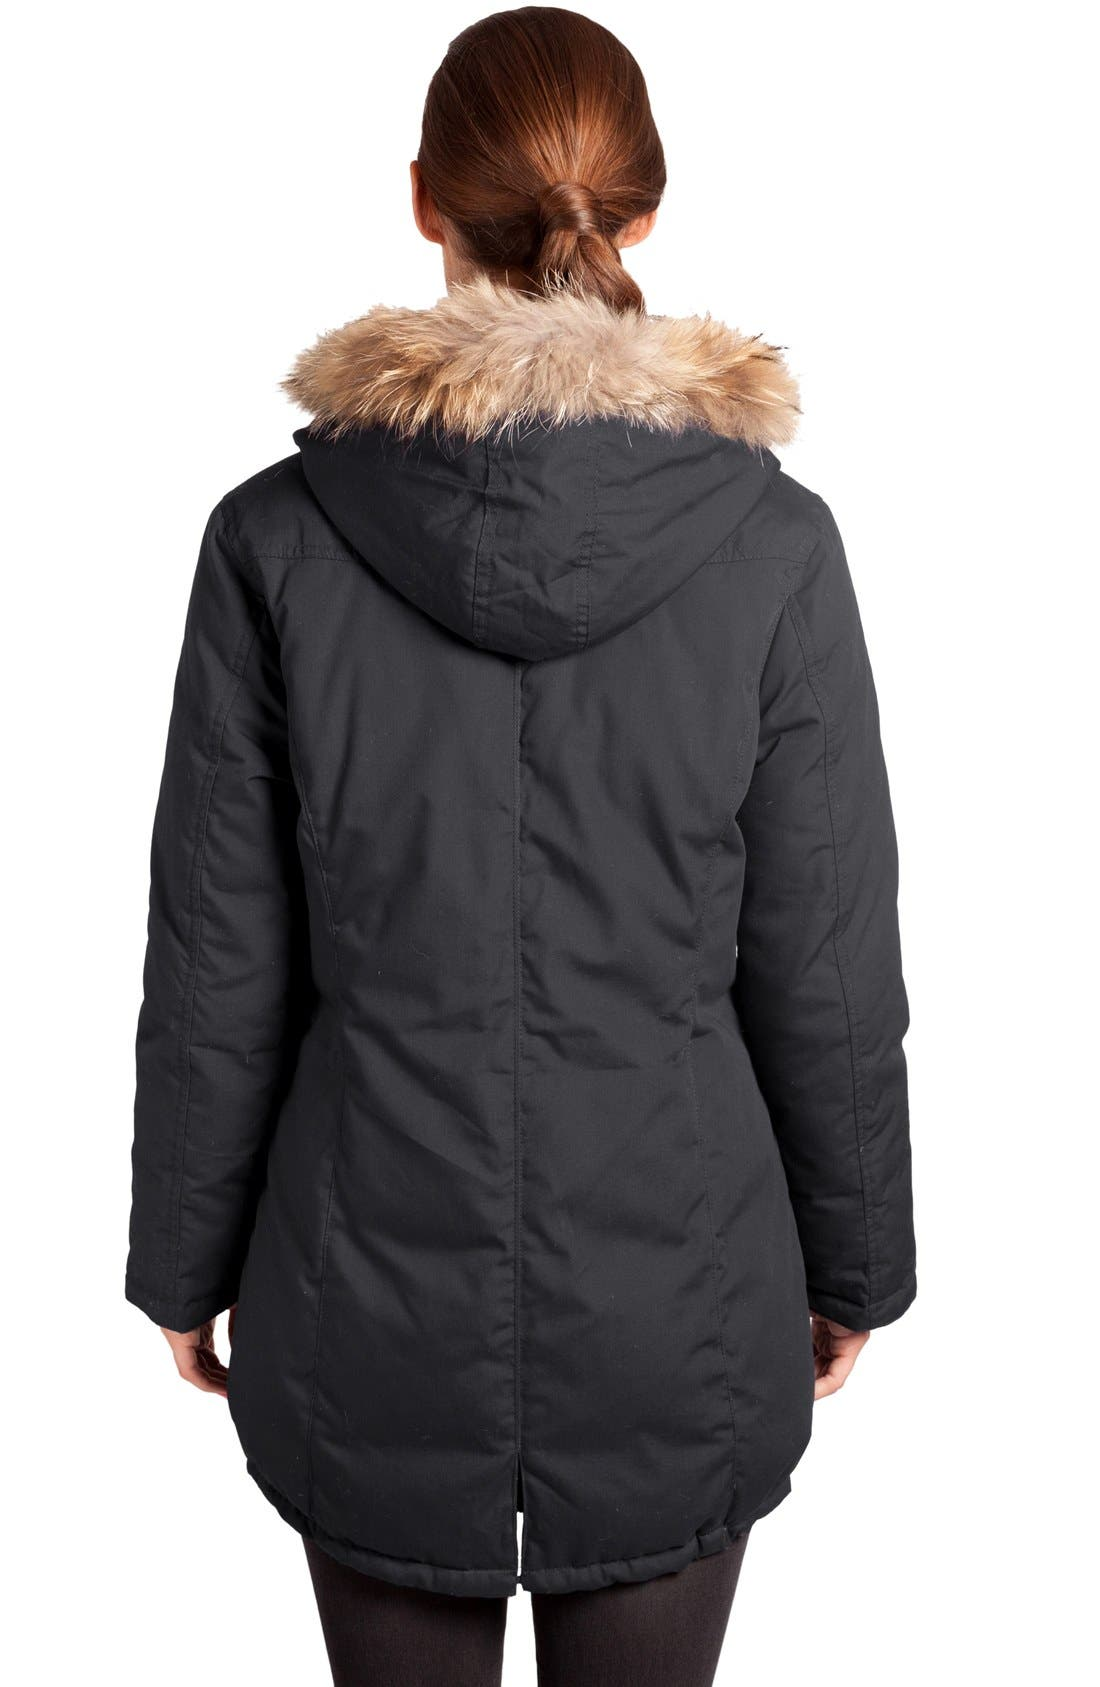 Convertible Down 3-in-1 Maternity Jacket,                             Alternate thumbnail 9, color,                             BLACK